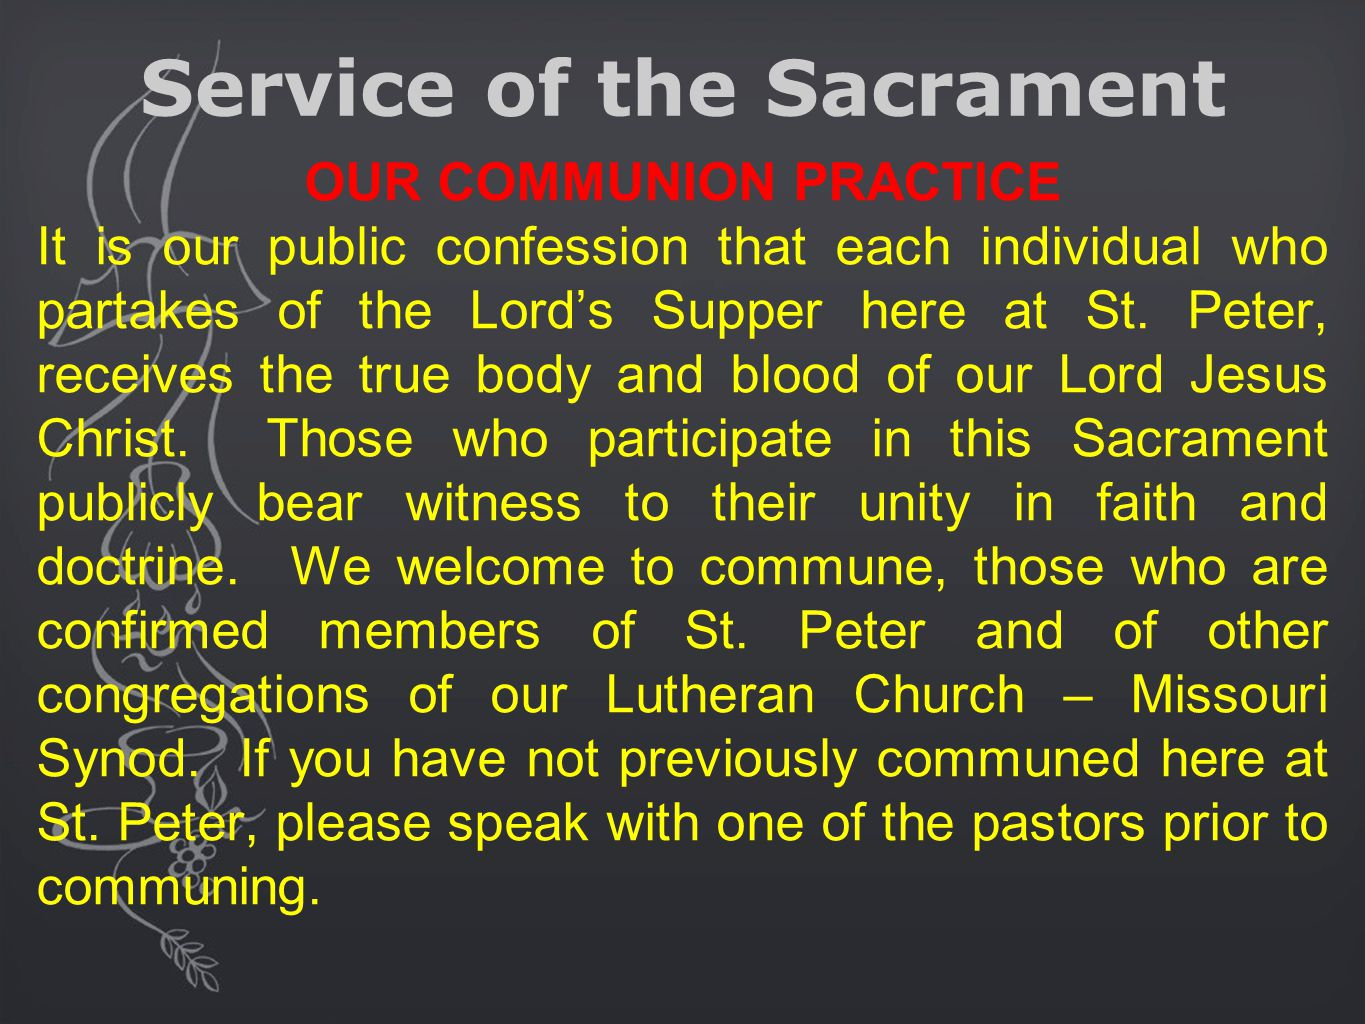 Service of the Sacrament OUR COMMUNION PRACTICE It is our public confession that each individual who partakes of the Lord's Supper here at St. Peter,